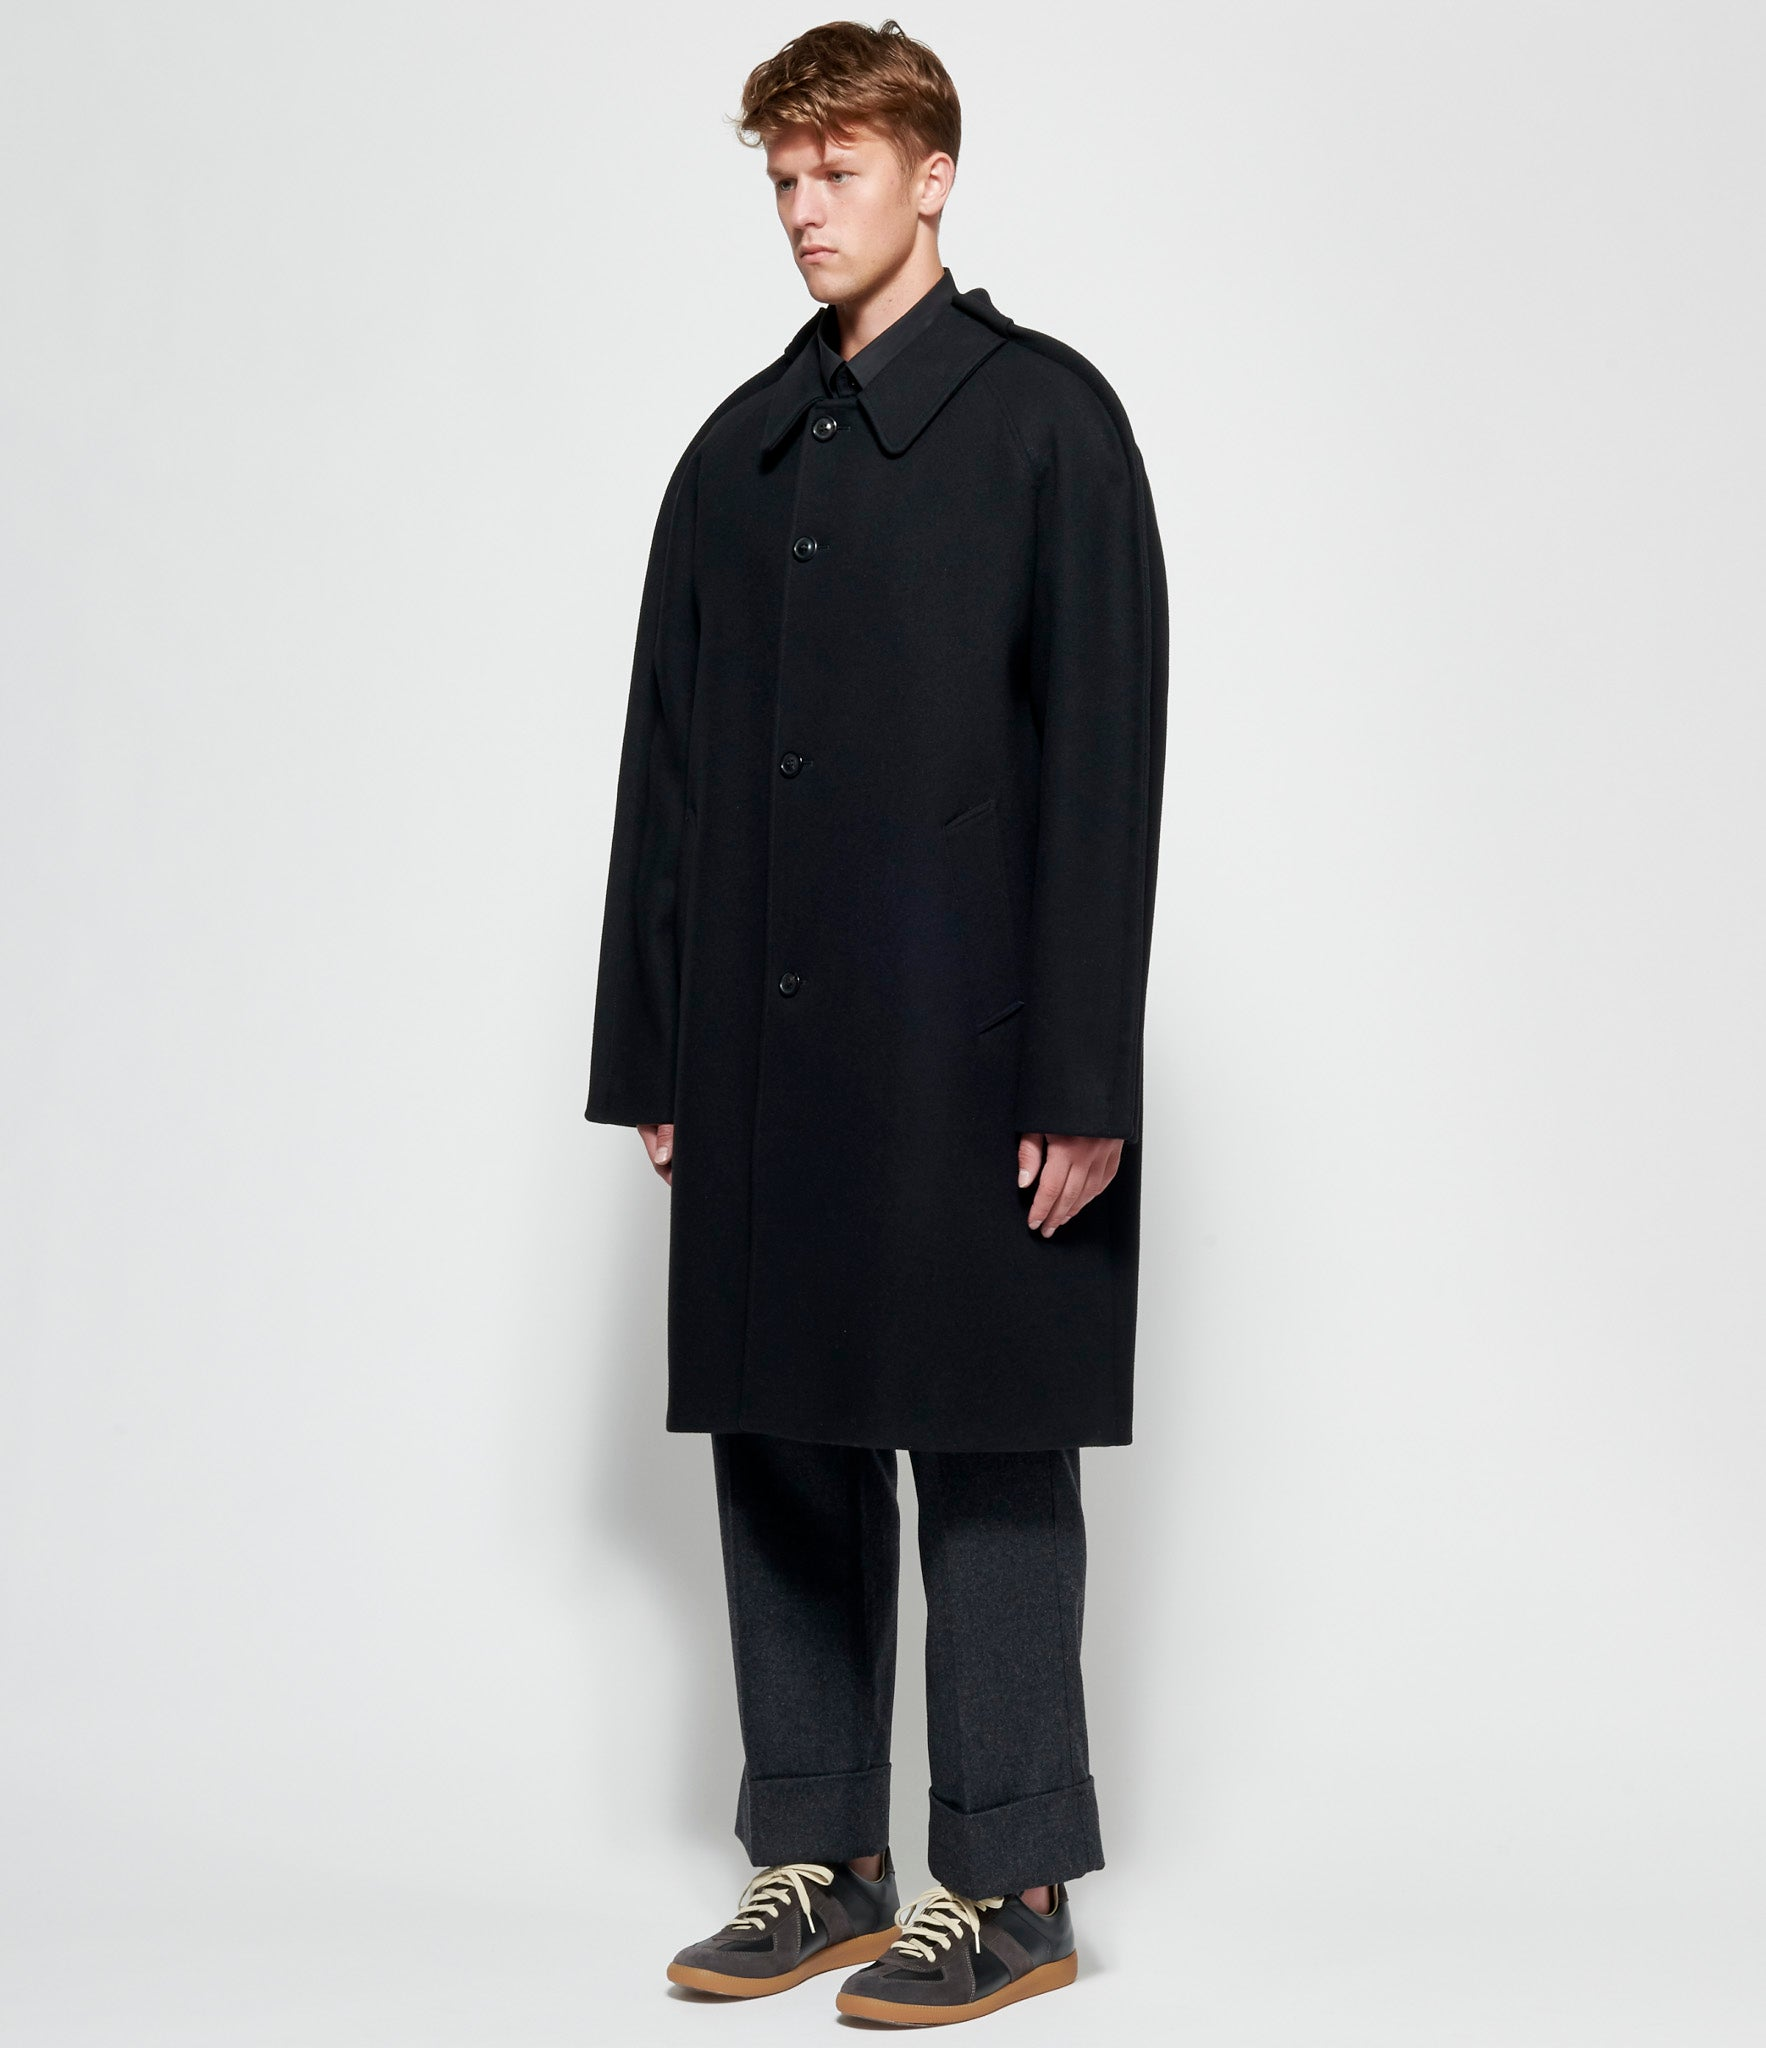 Maison Margiela Outline Coat